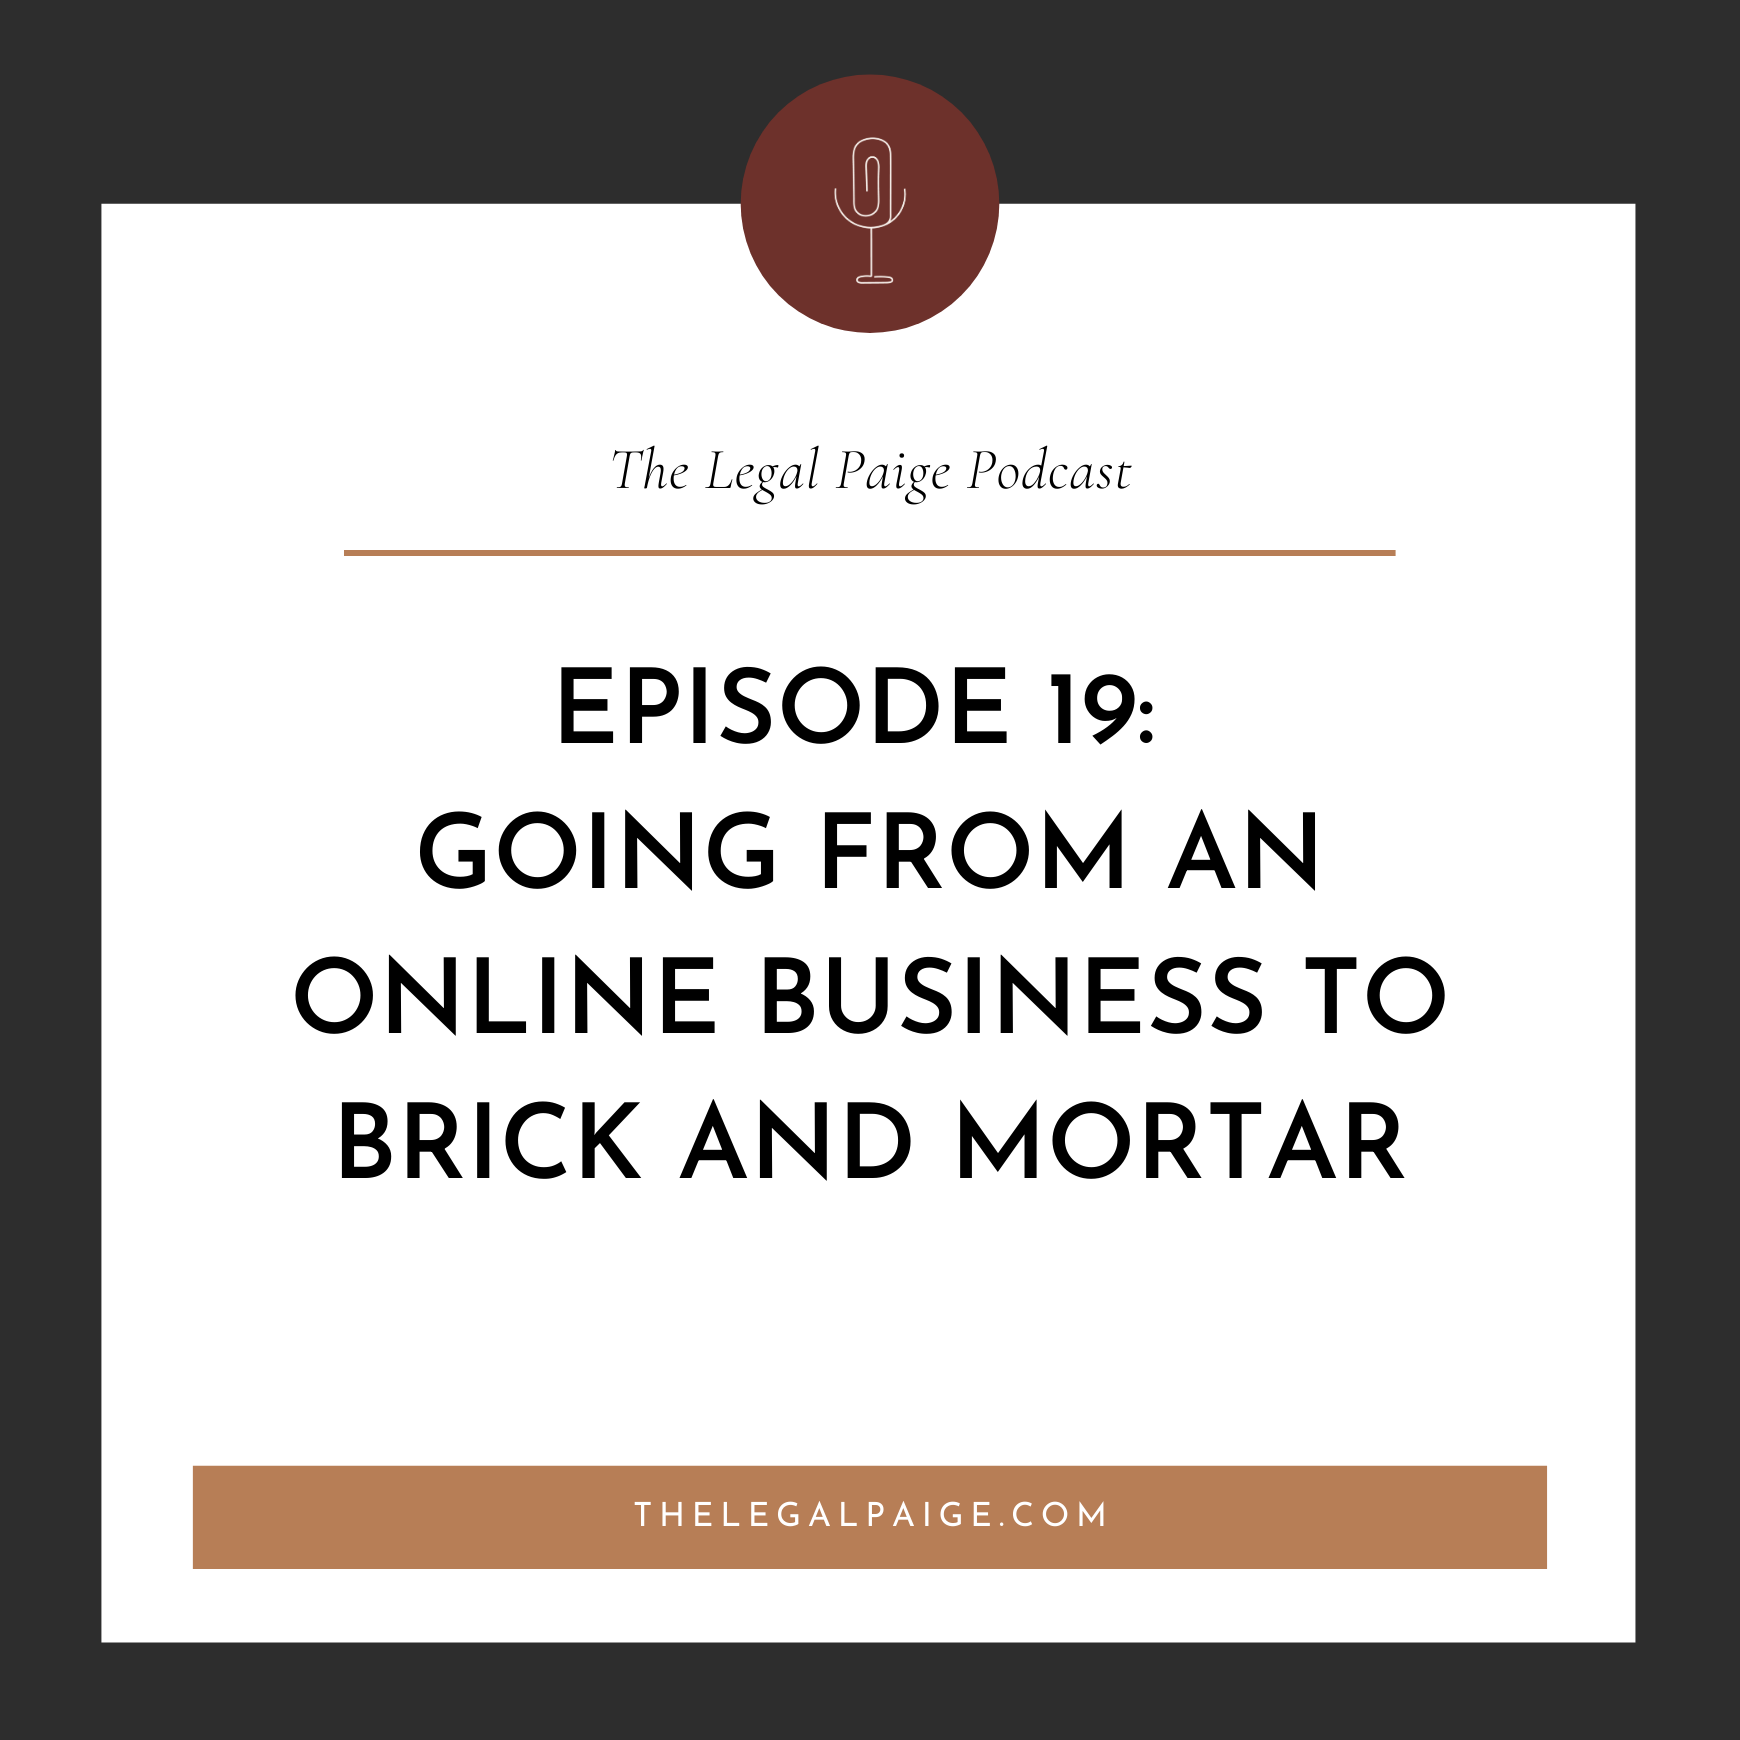 Episode 19: Going from an Online Business to setting up shop the Brick and Mortar way!